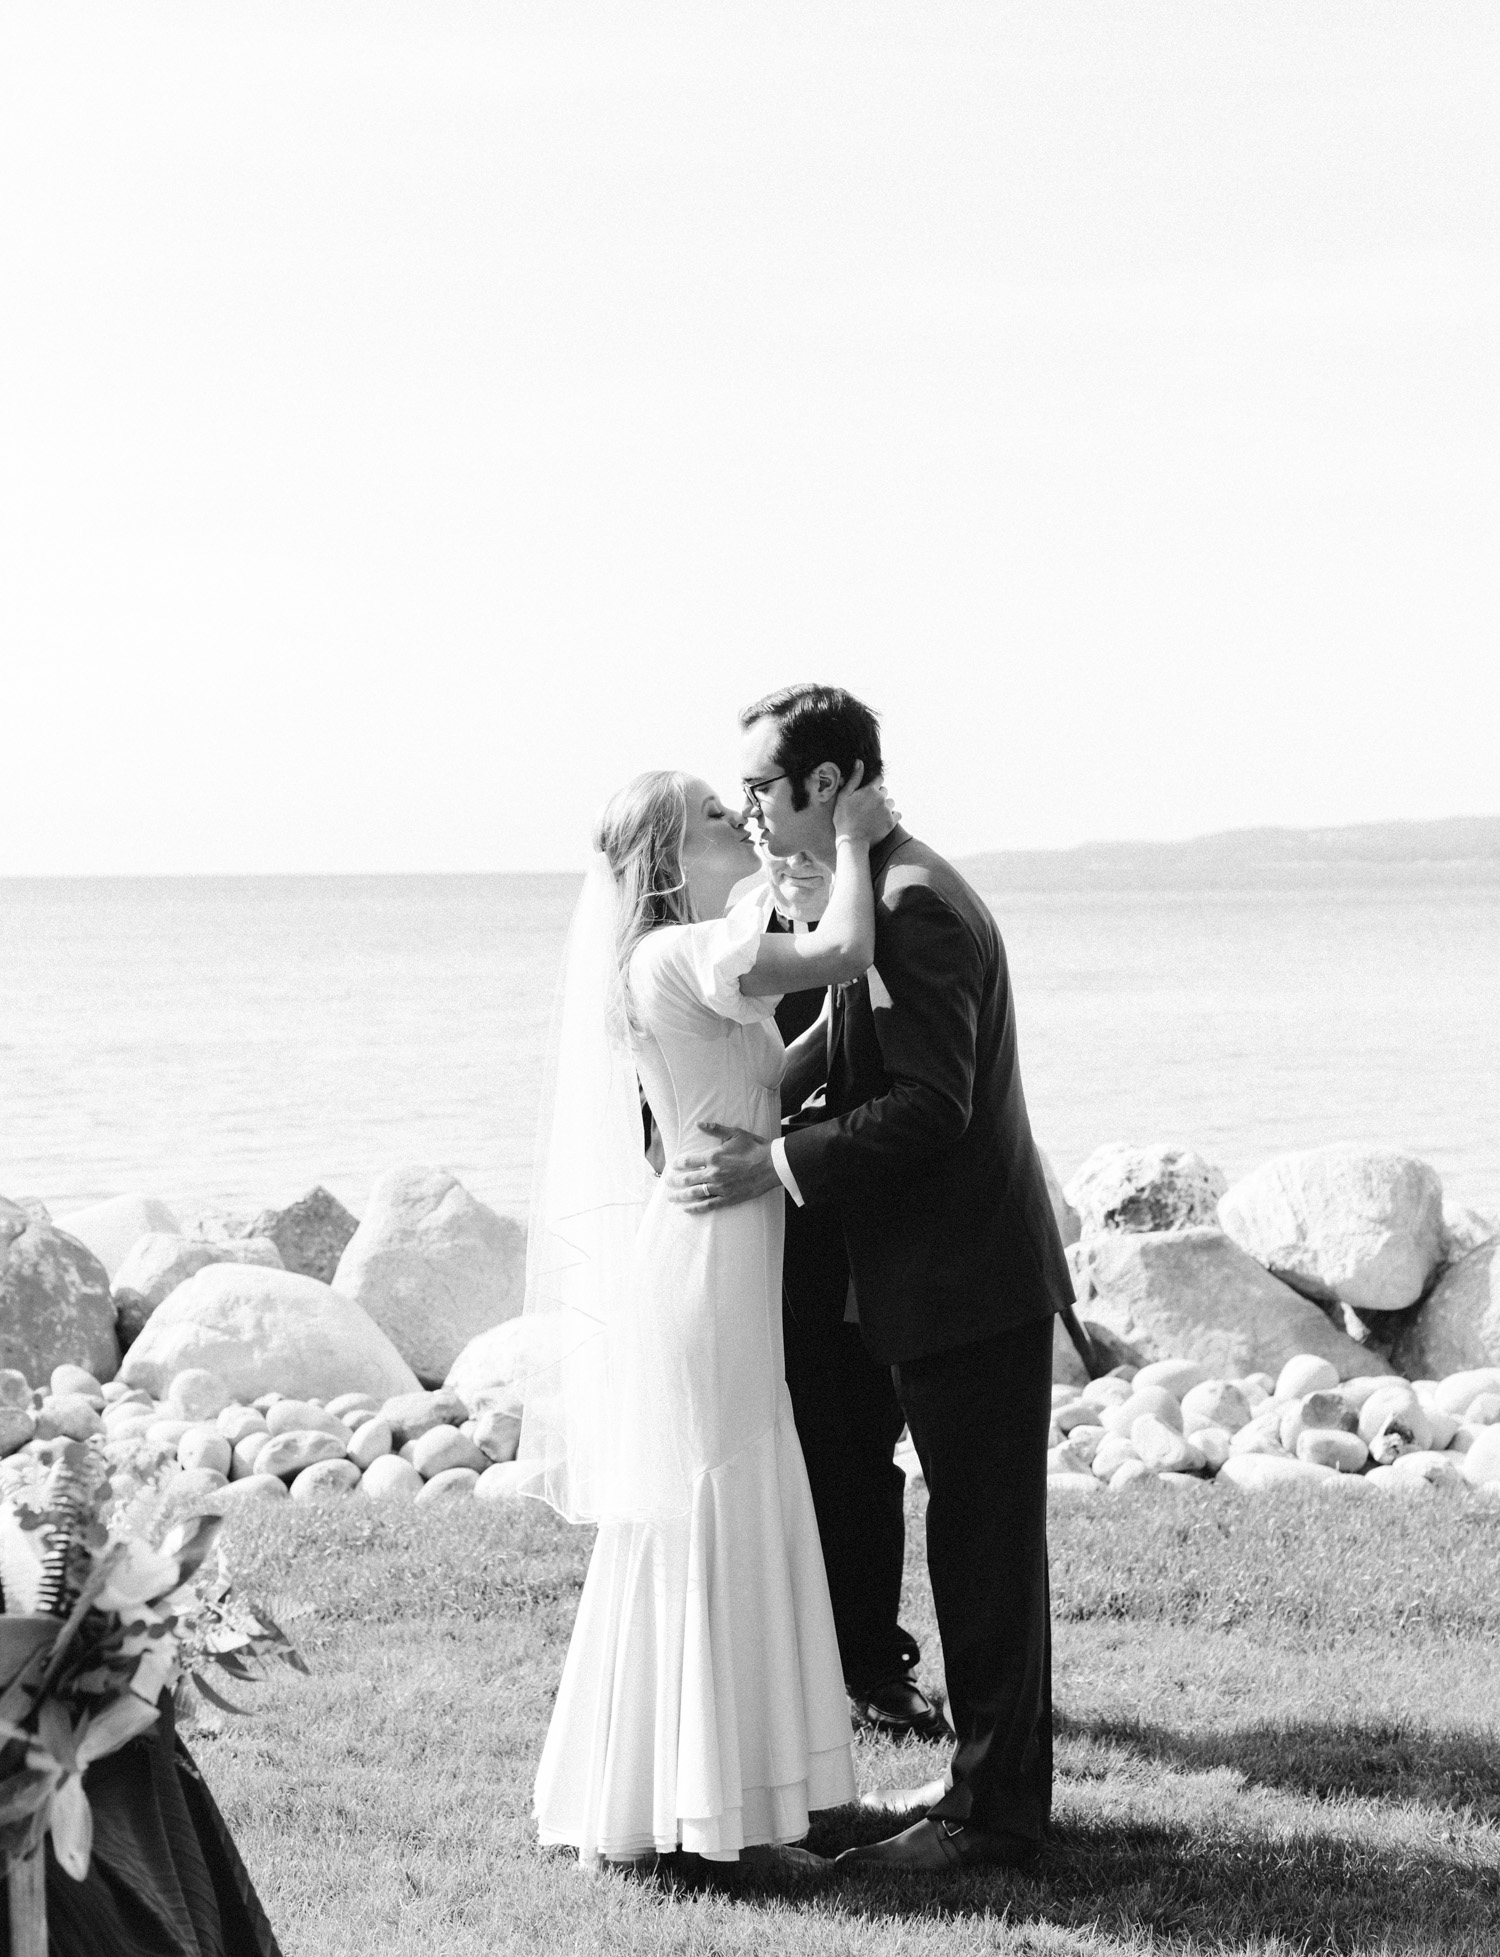 A bride and groom share their first kiss in black and white during their Lake Michigan wedding ceremony in Petoskey